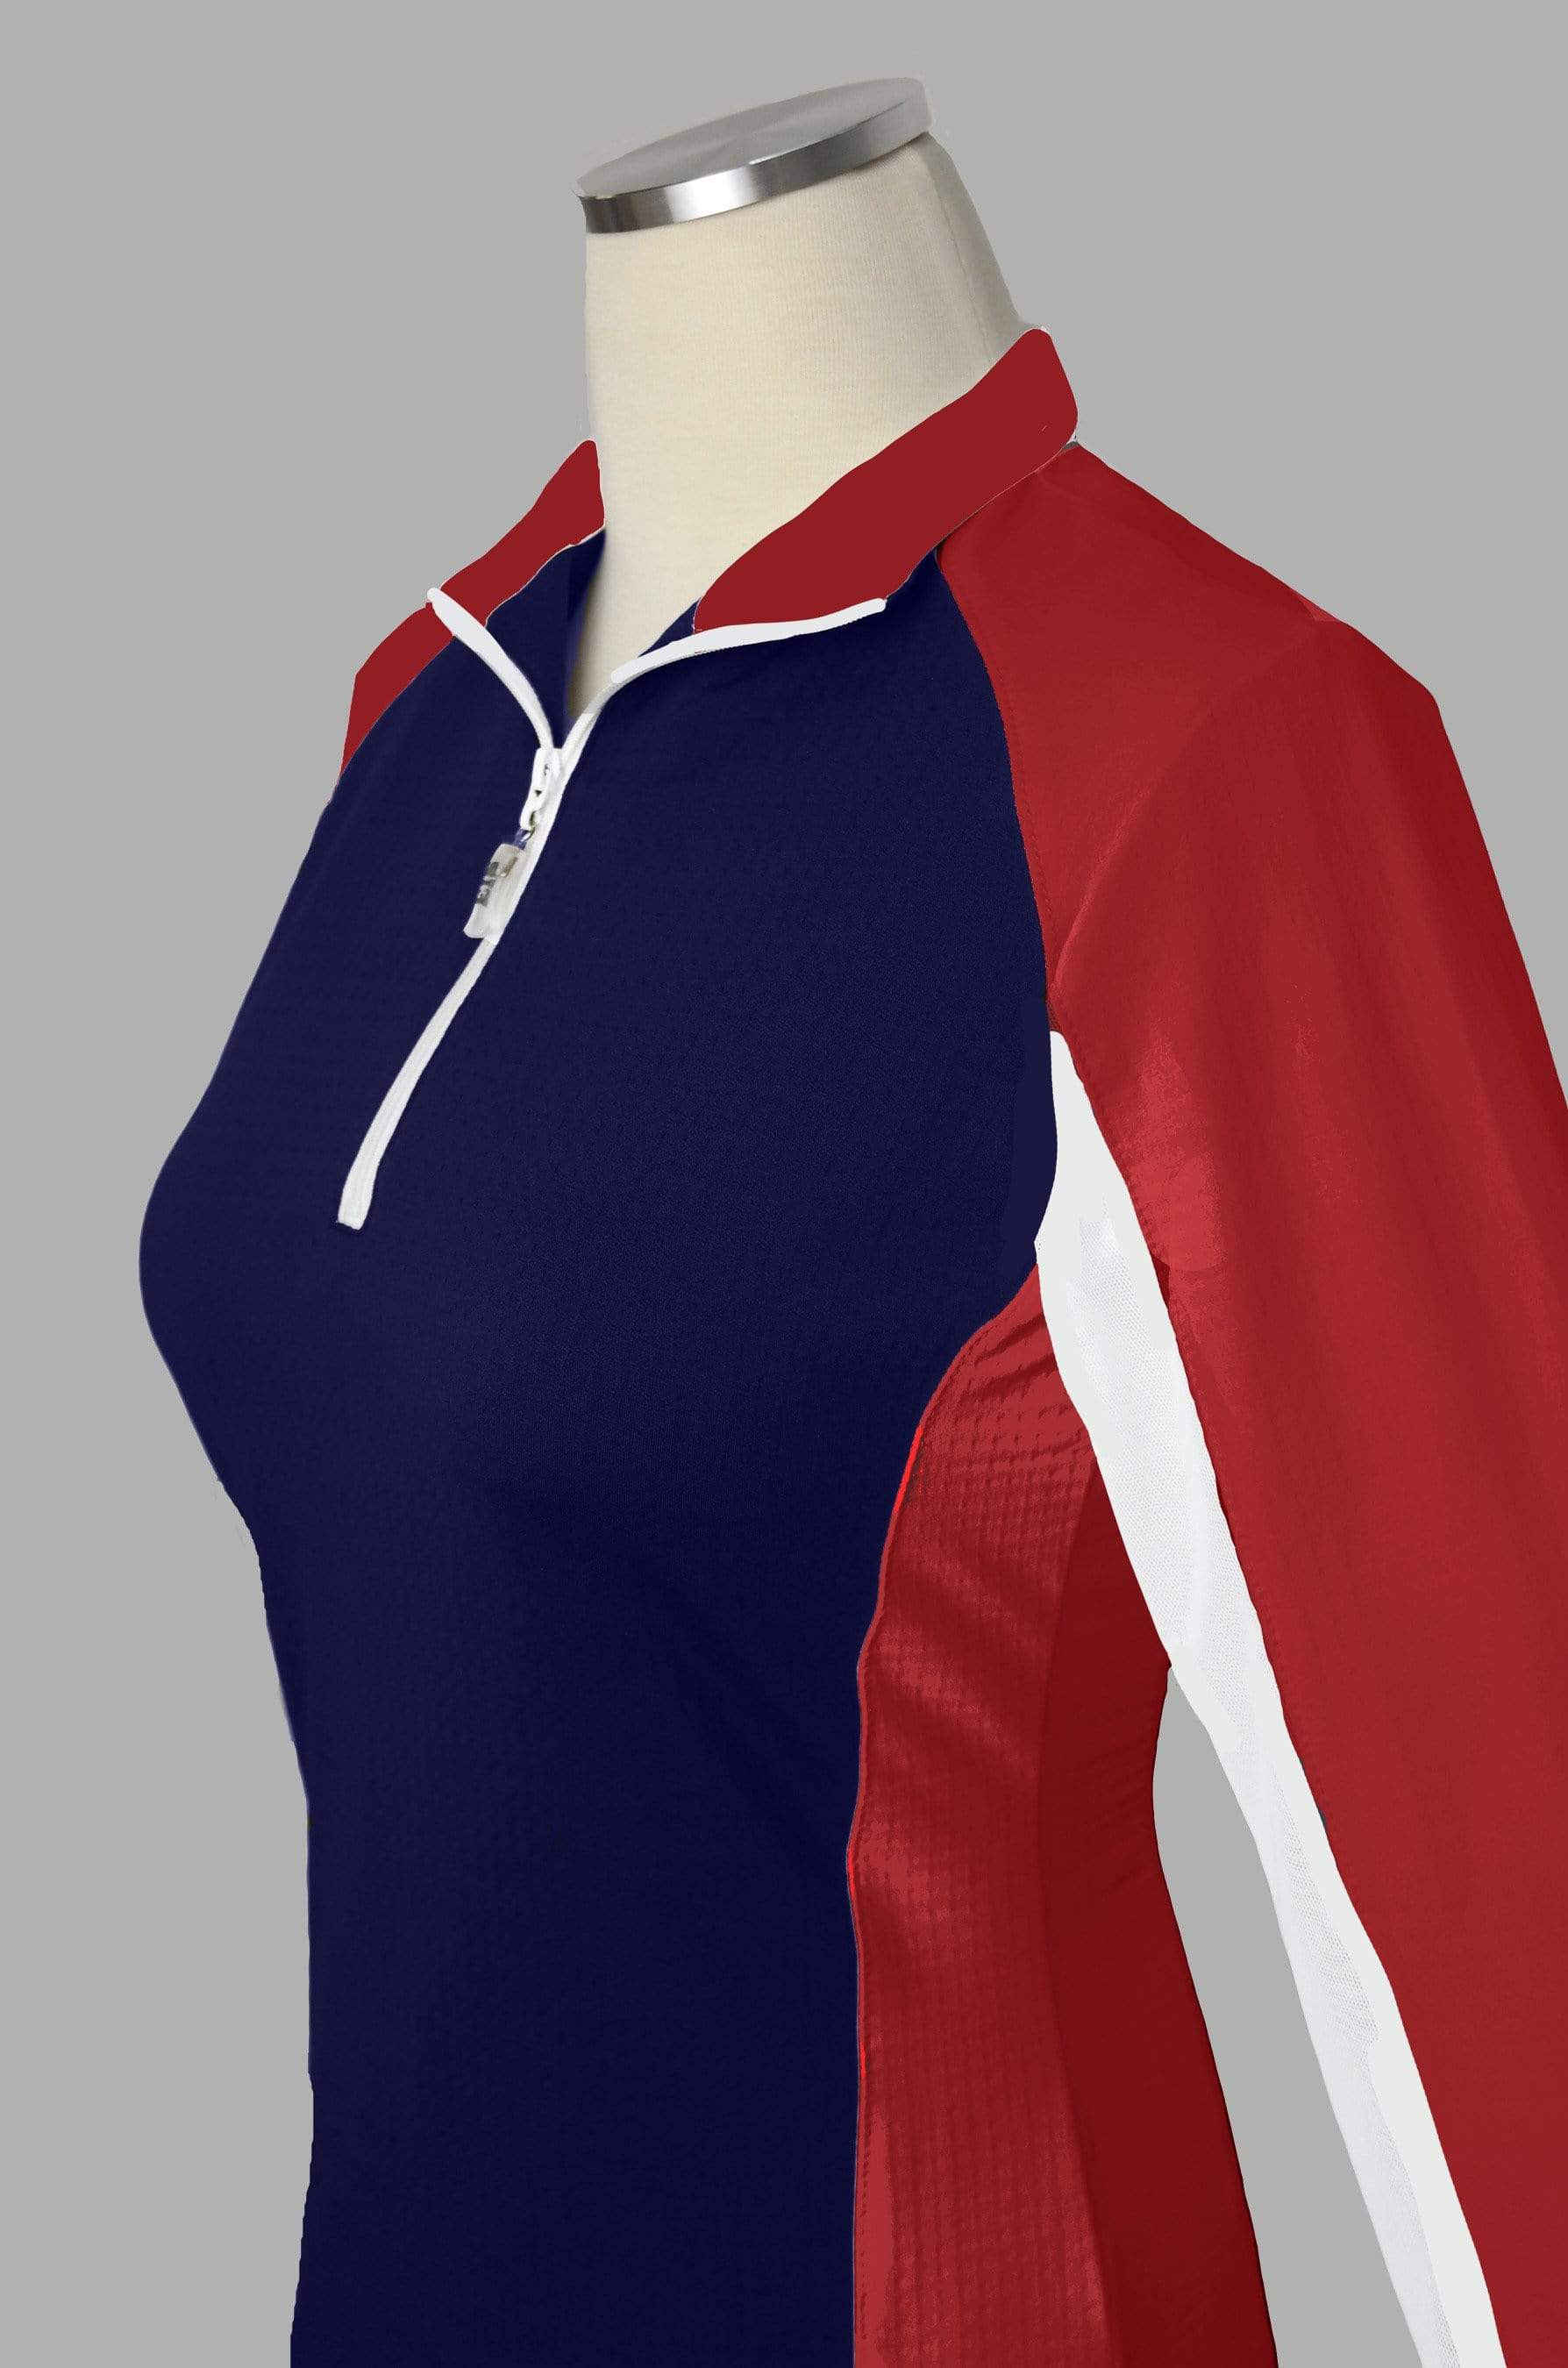 EIS Sunshirt XS Olympic Women's Long Sleeve equestrian team apparel online tack store mobile tack store custom farm apparel custom show stable clothing equestrian lifestyle horse show clothing riding clothes Wear a flattering sunshirt when you ride | made in the USA horses equestrian tack store